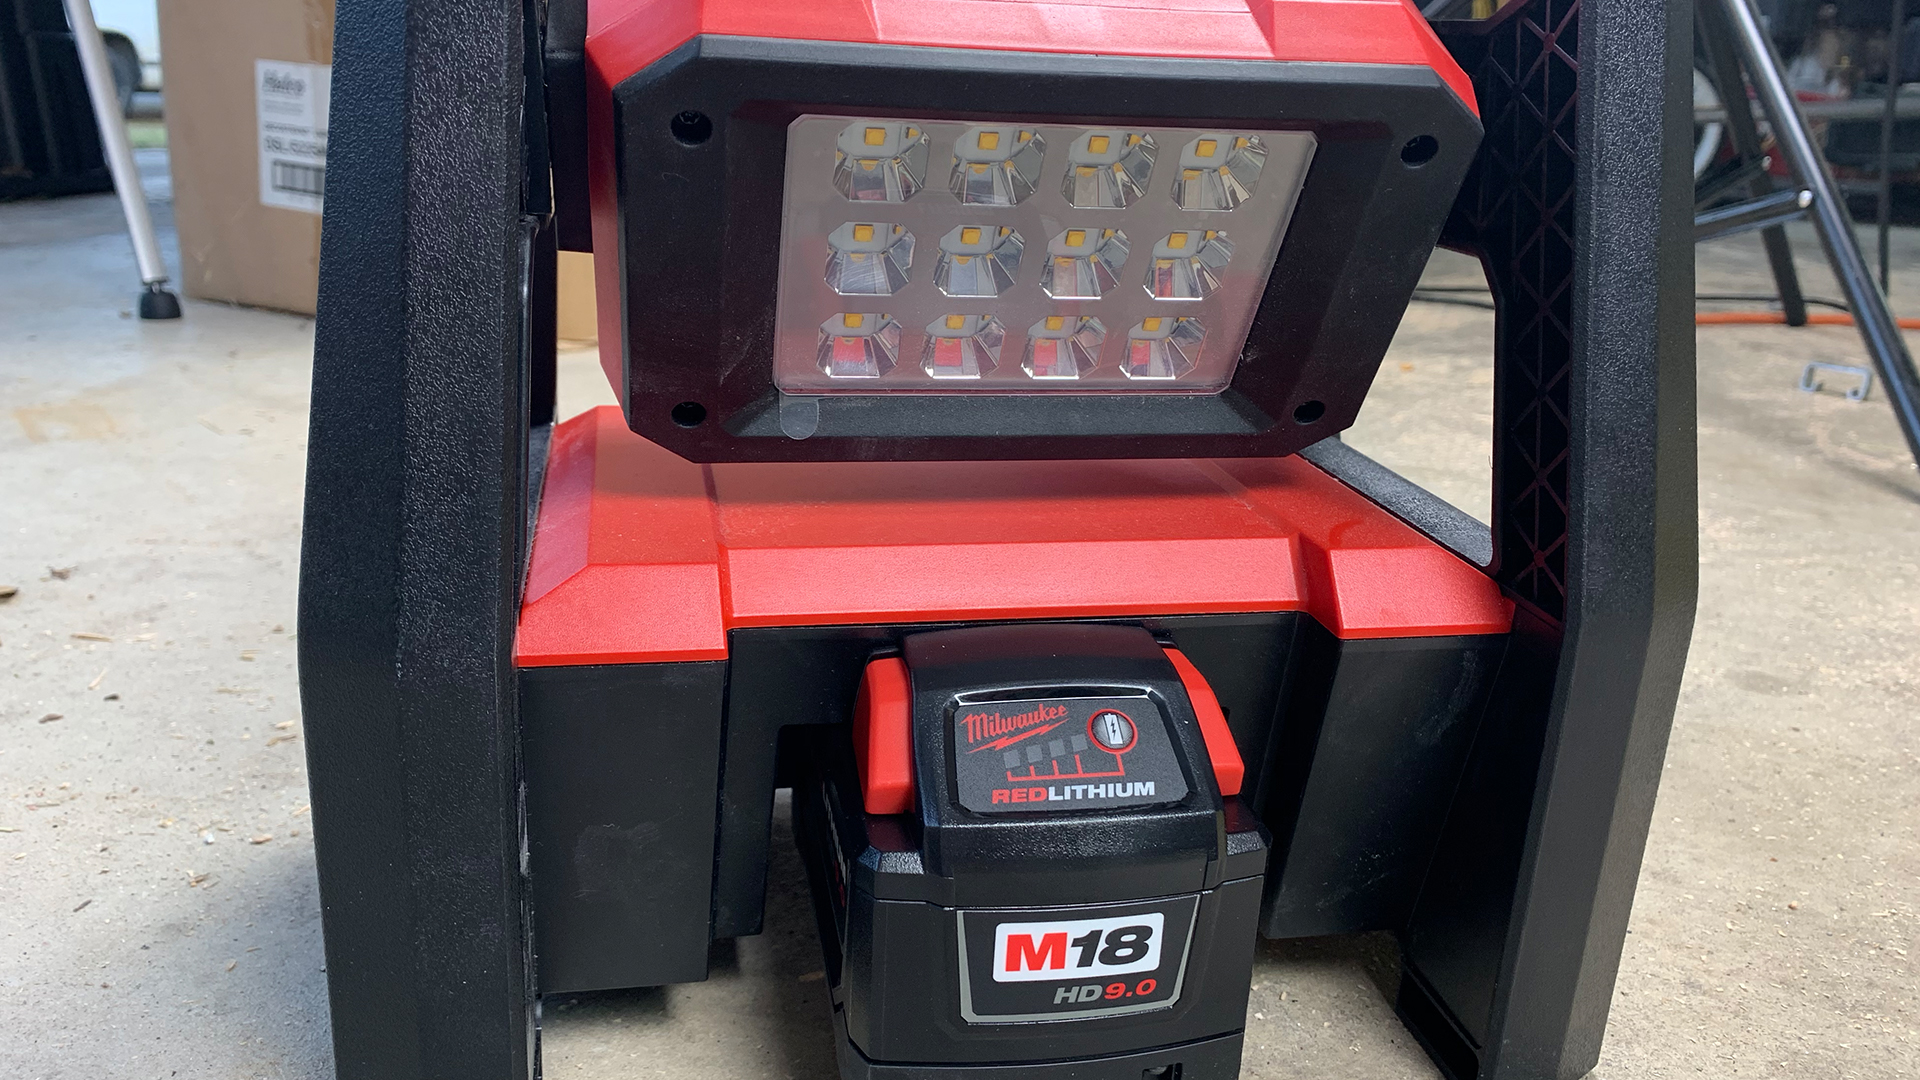 milwaukee-rover-jobsite-led-flood-light-m18